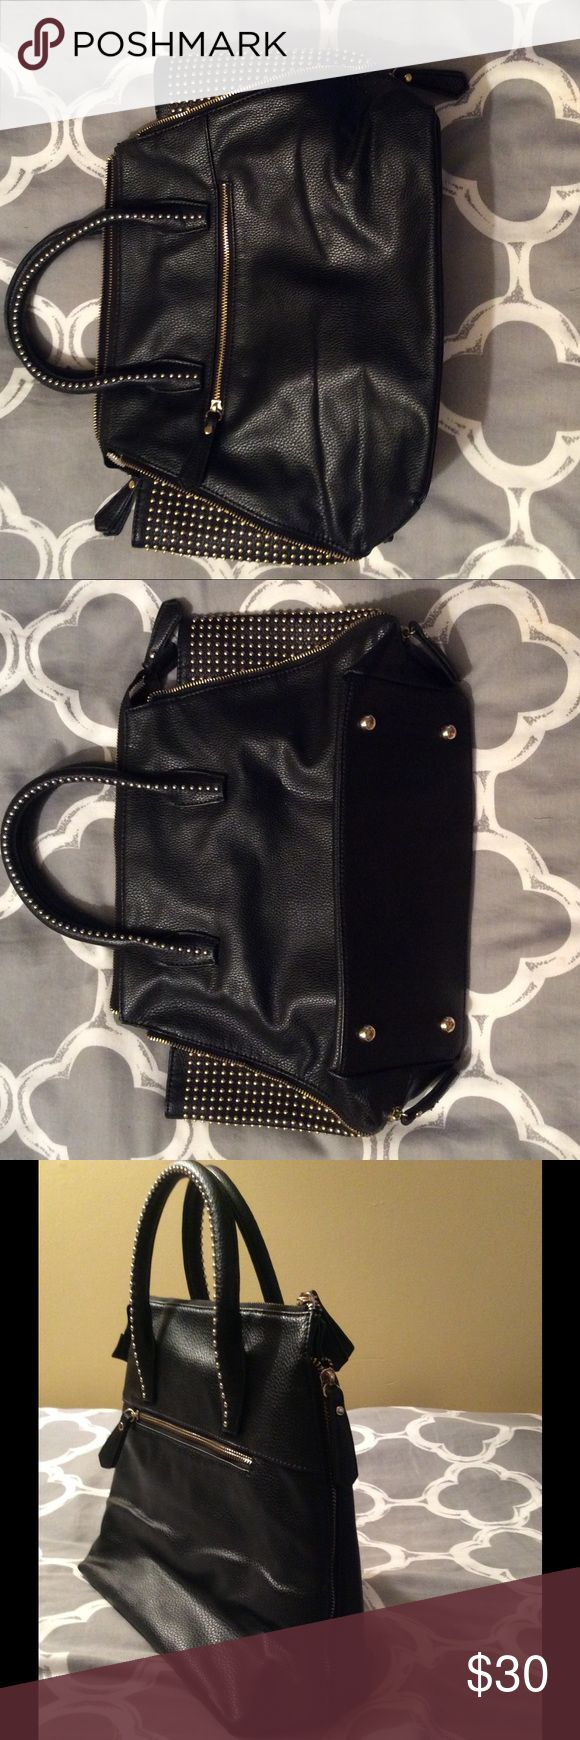 Charming Charlie-black stud zip purse Used, great condition. Sides zip up or zip down to expand with studded sides. Charming Charlie Bags Satchels